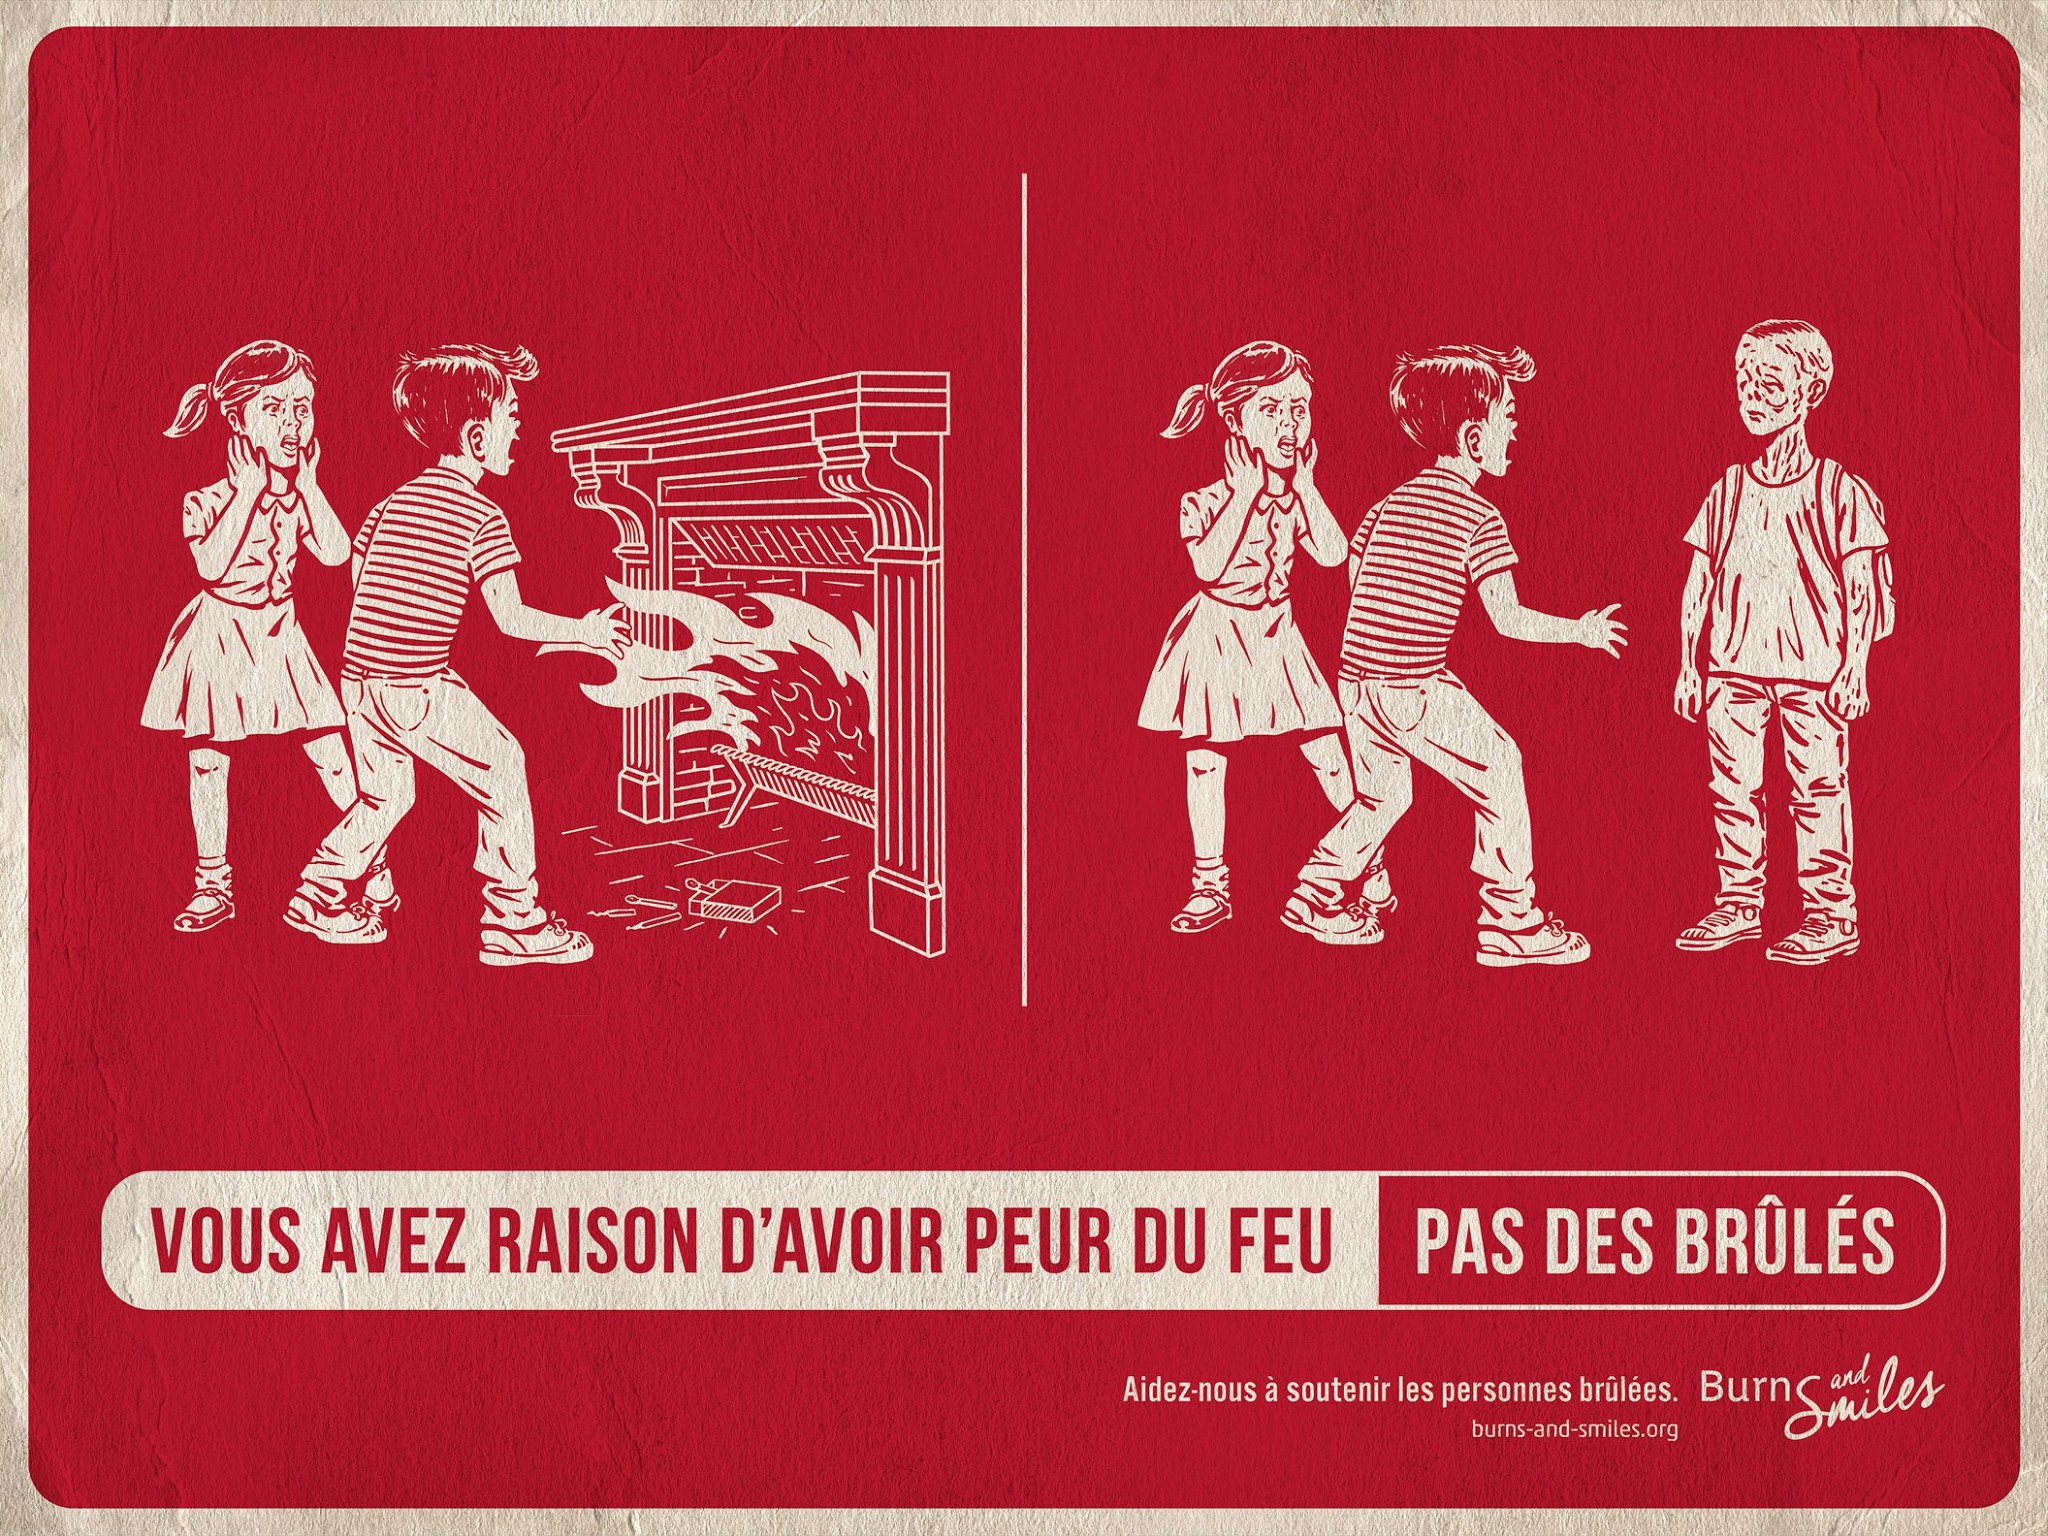 burns-and-smiles-publicite-communication-print-press-ad-feu-brules-burn-agence-tbwa-paris-3